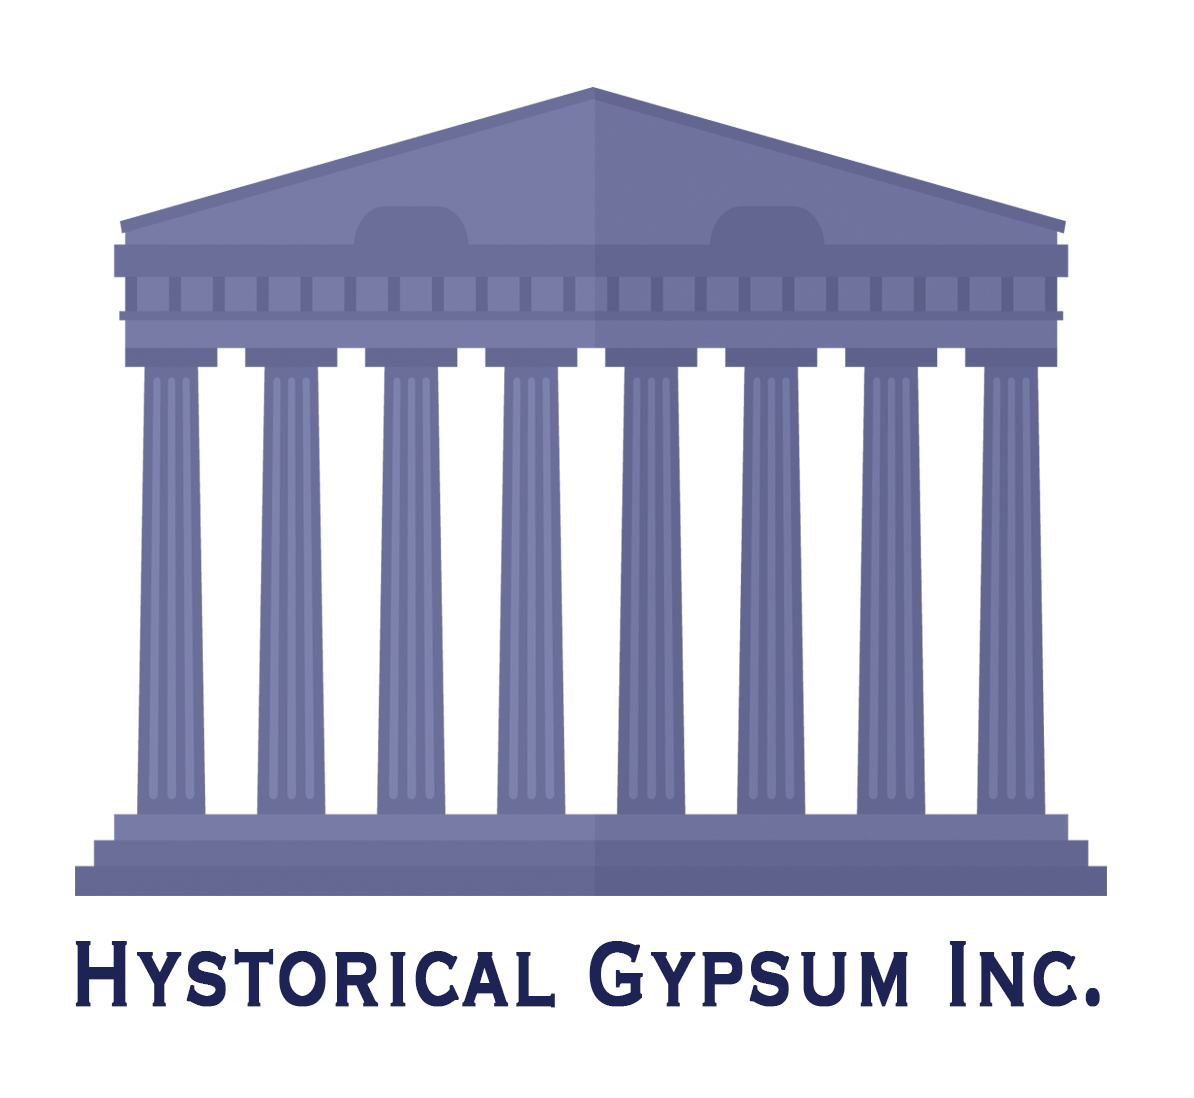 Historical Gypsum